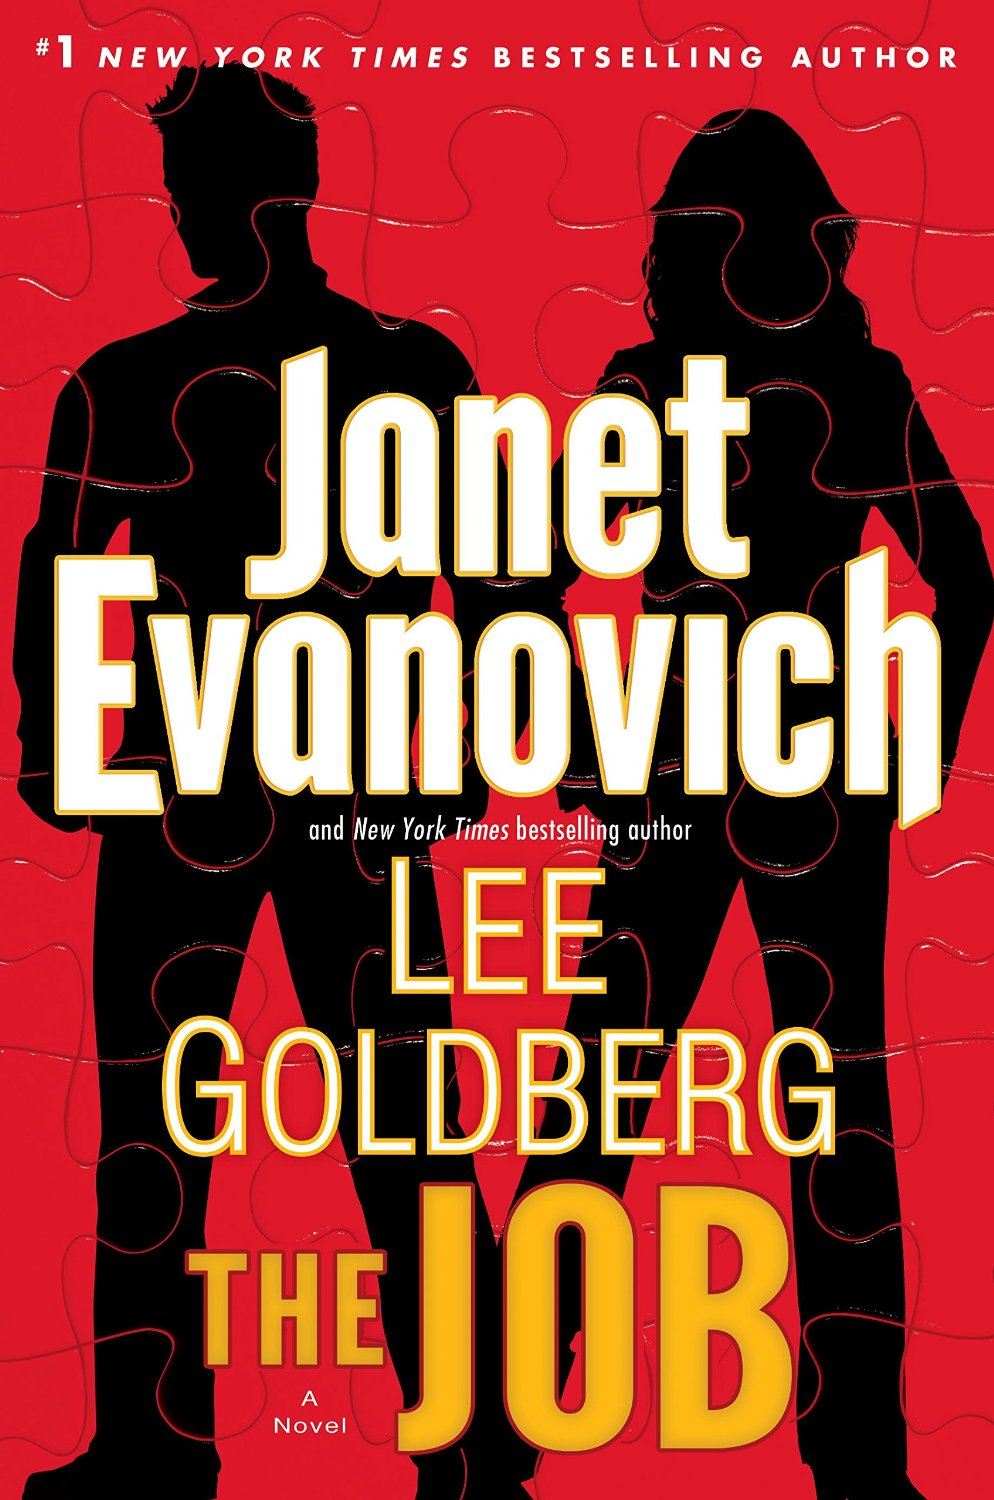 THE JOB by Lee Goldberg and Janet Evanovich